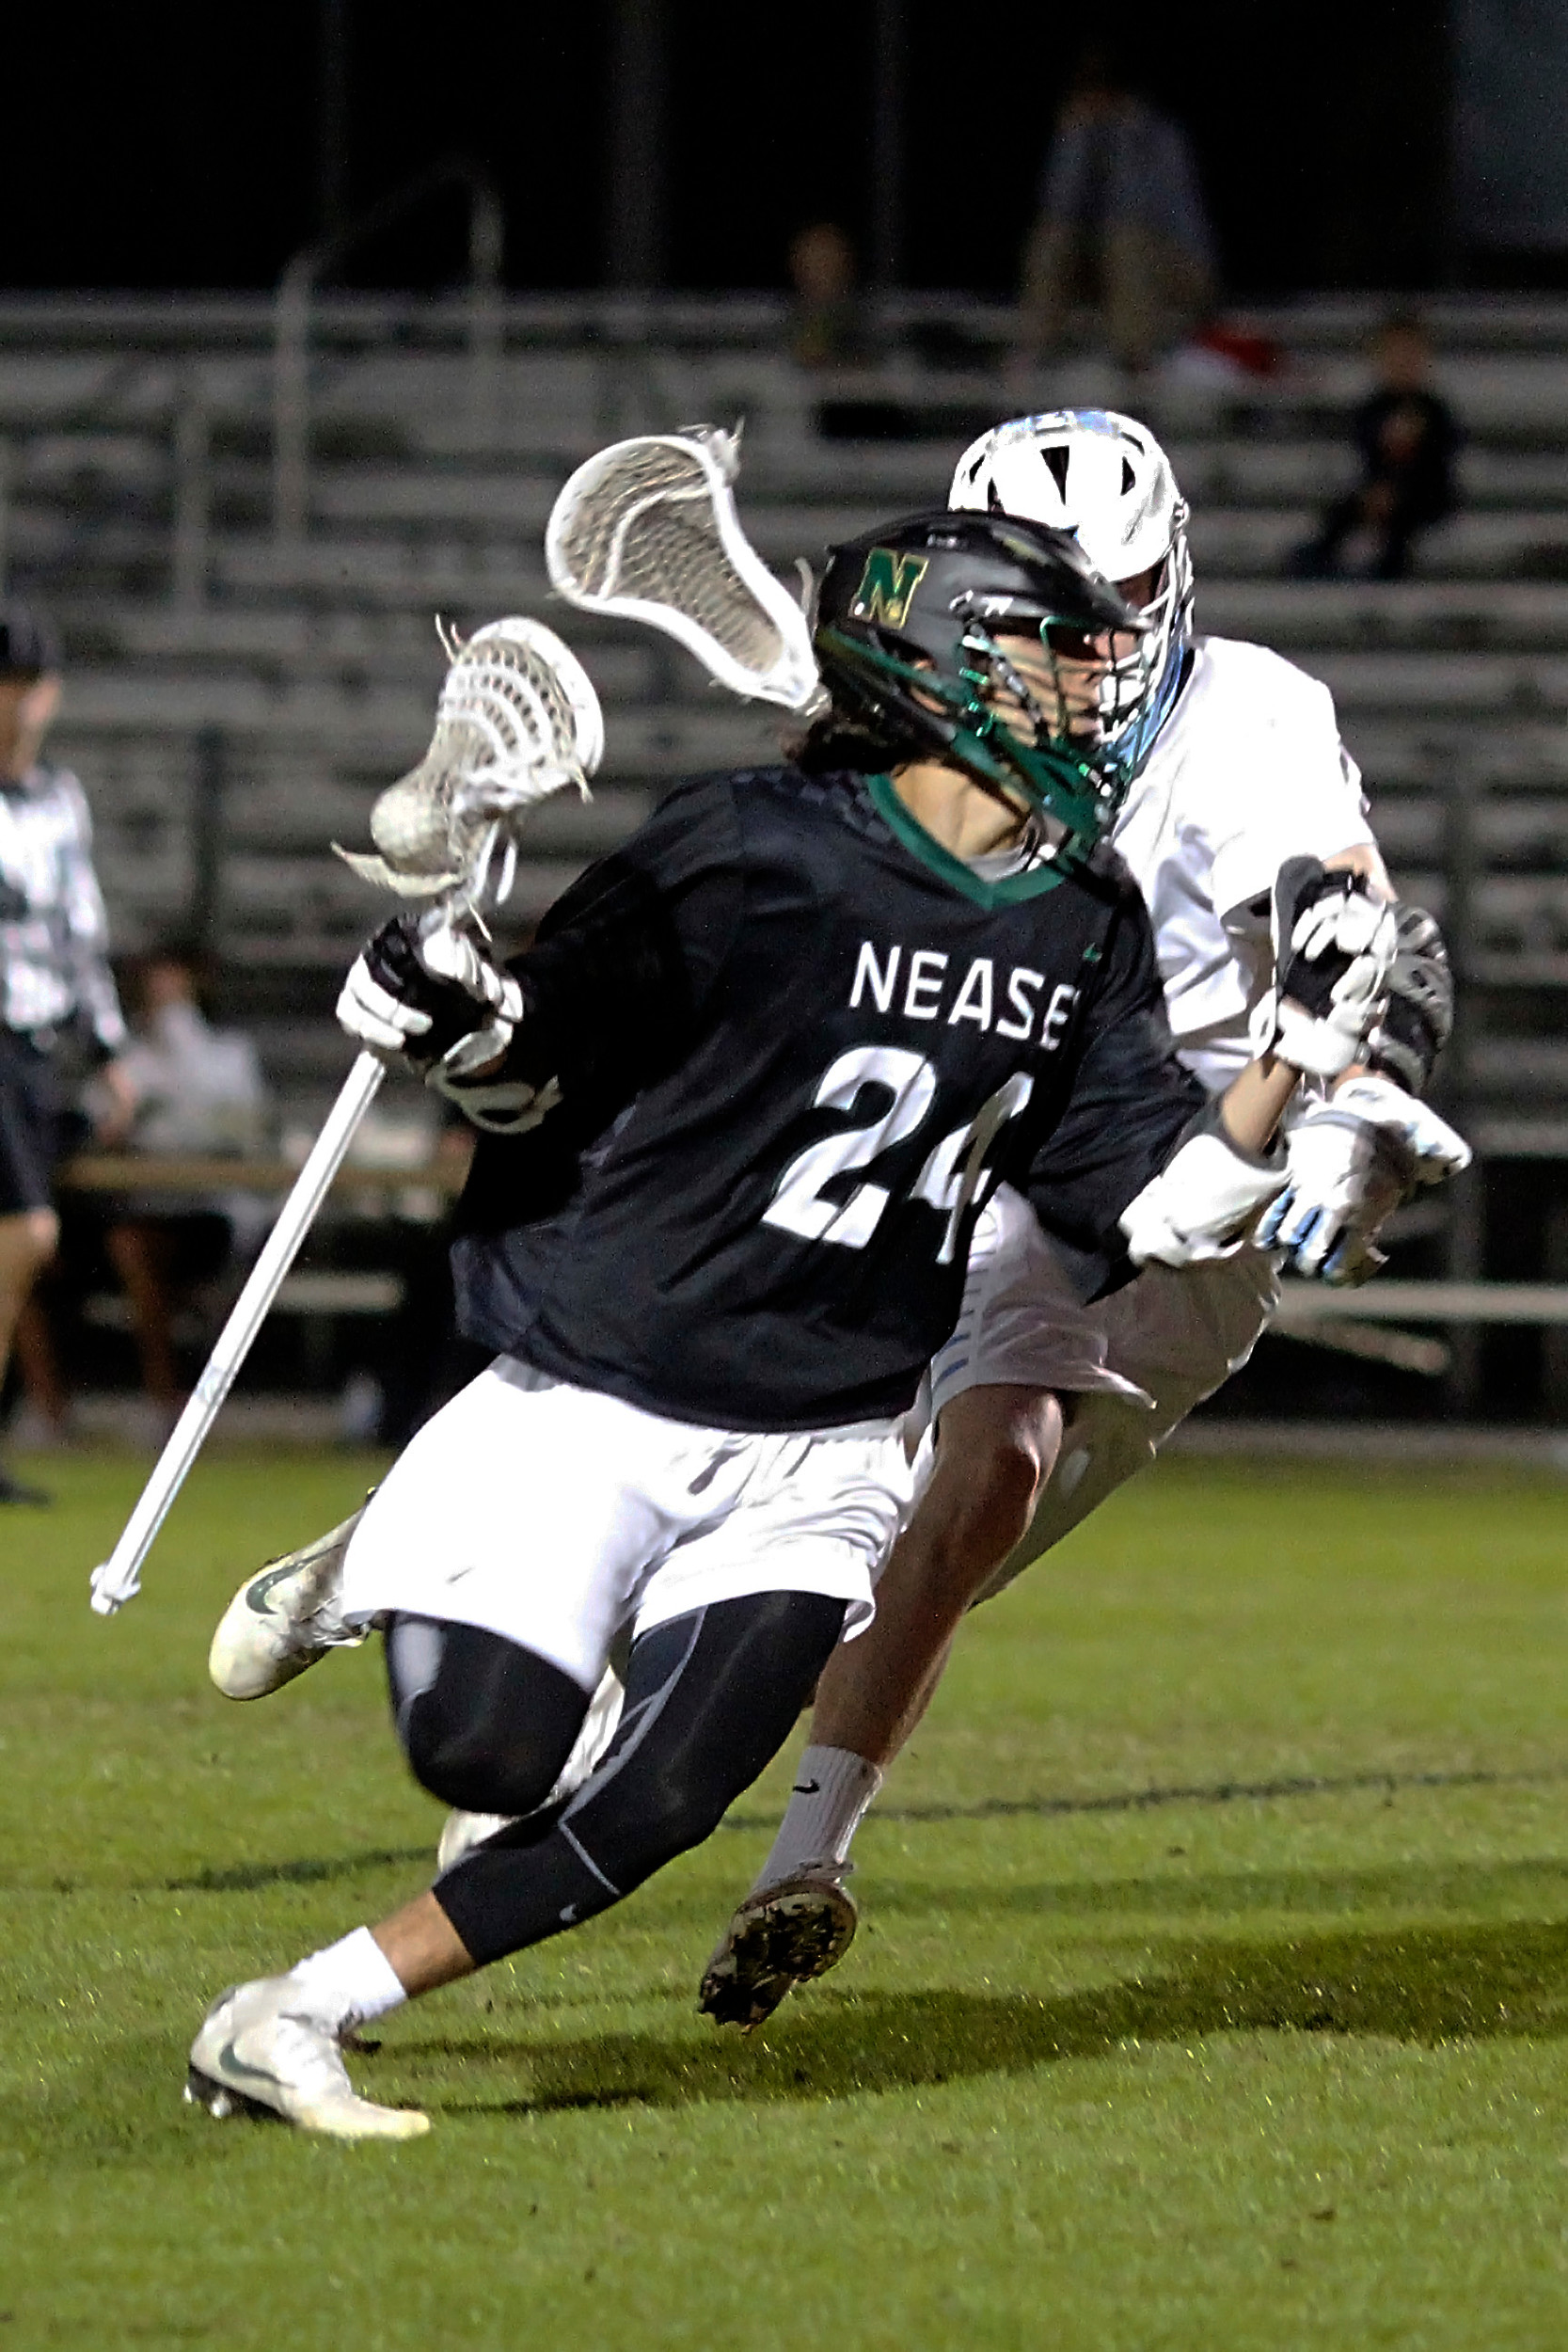 Nease's Grant Kettering is set to drive the ball on the Ponte Vedra goal.